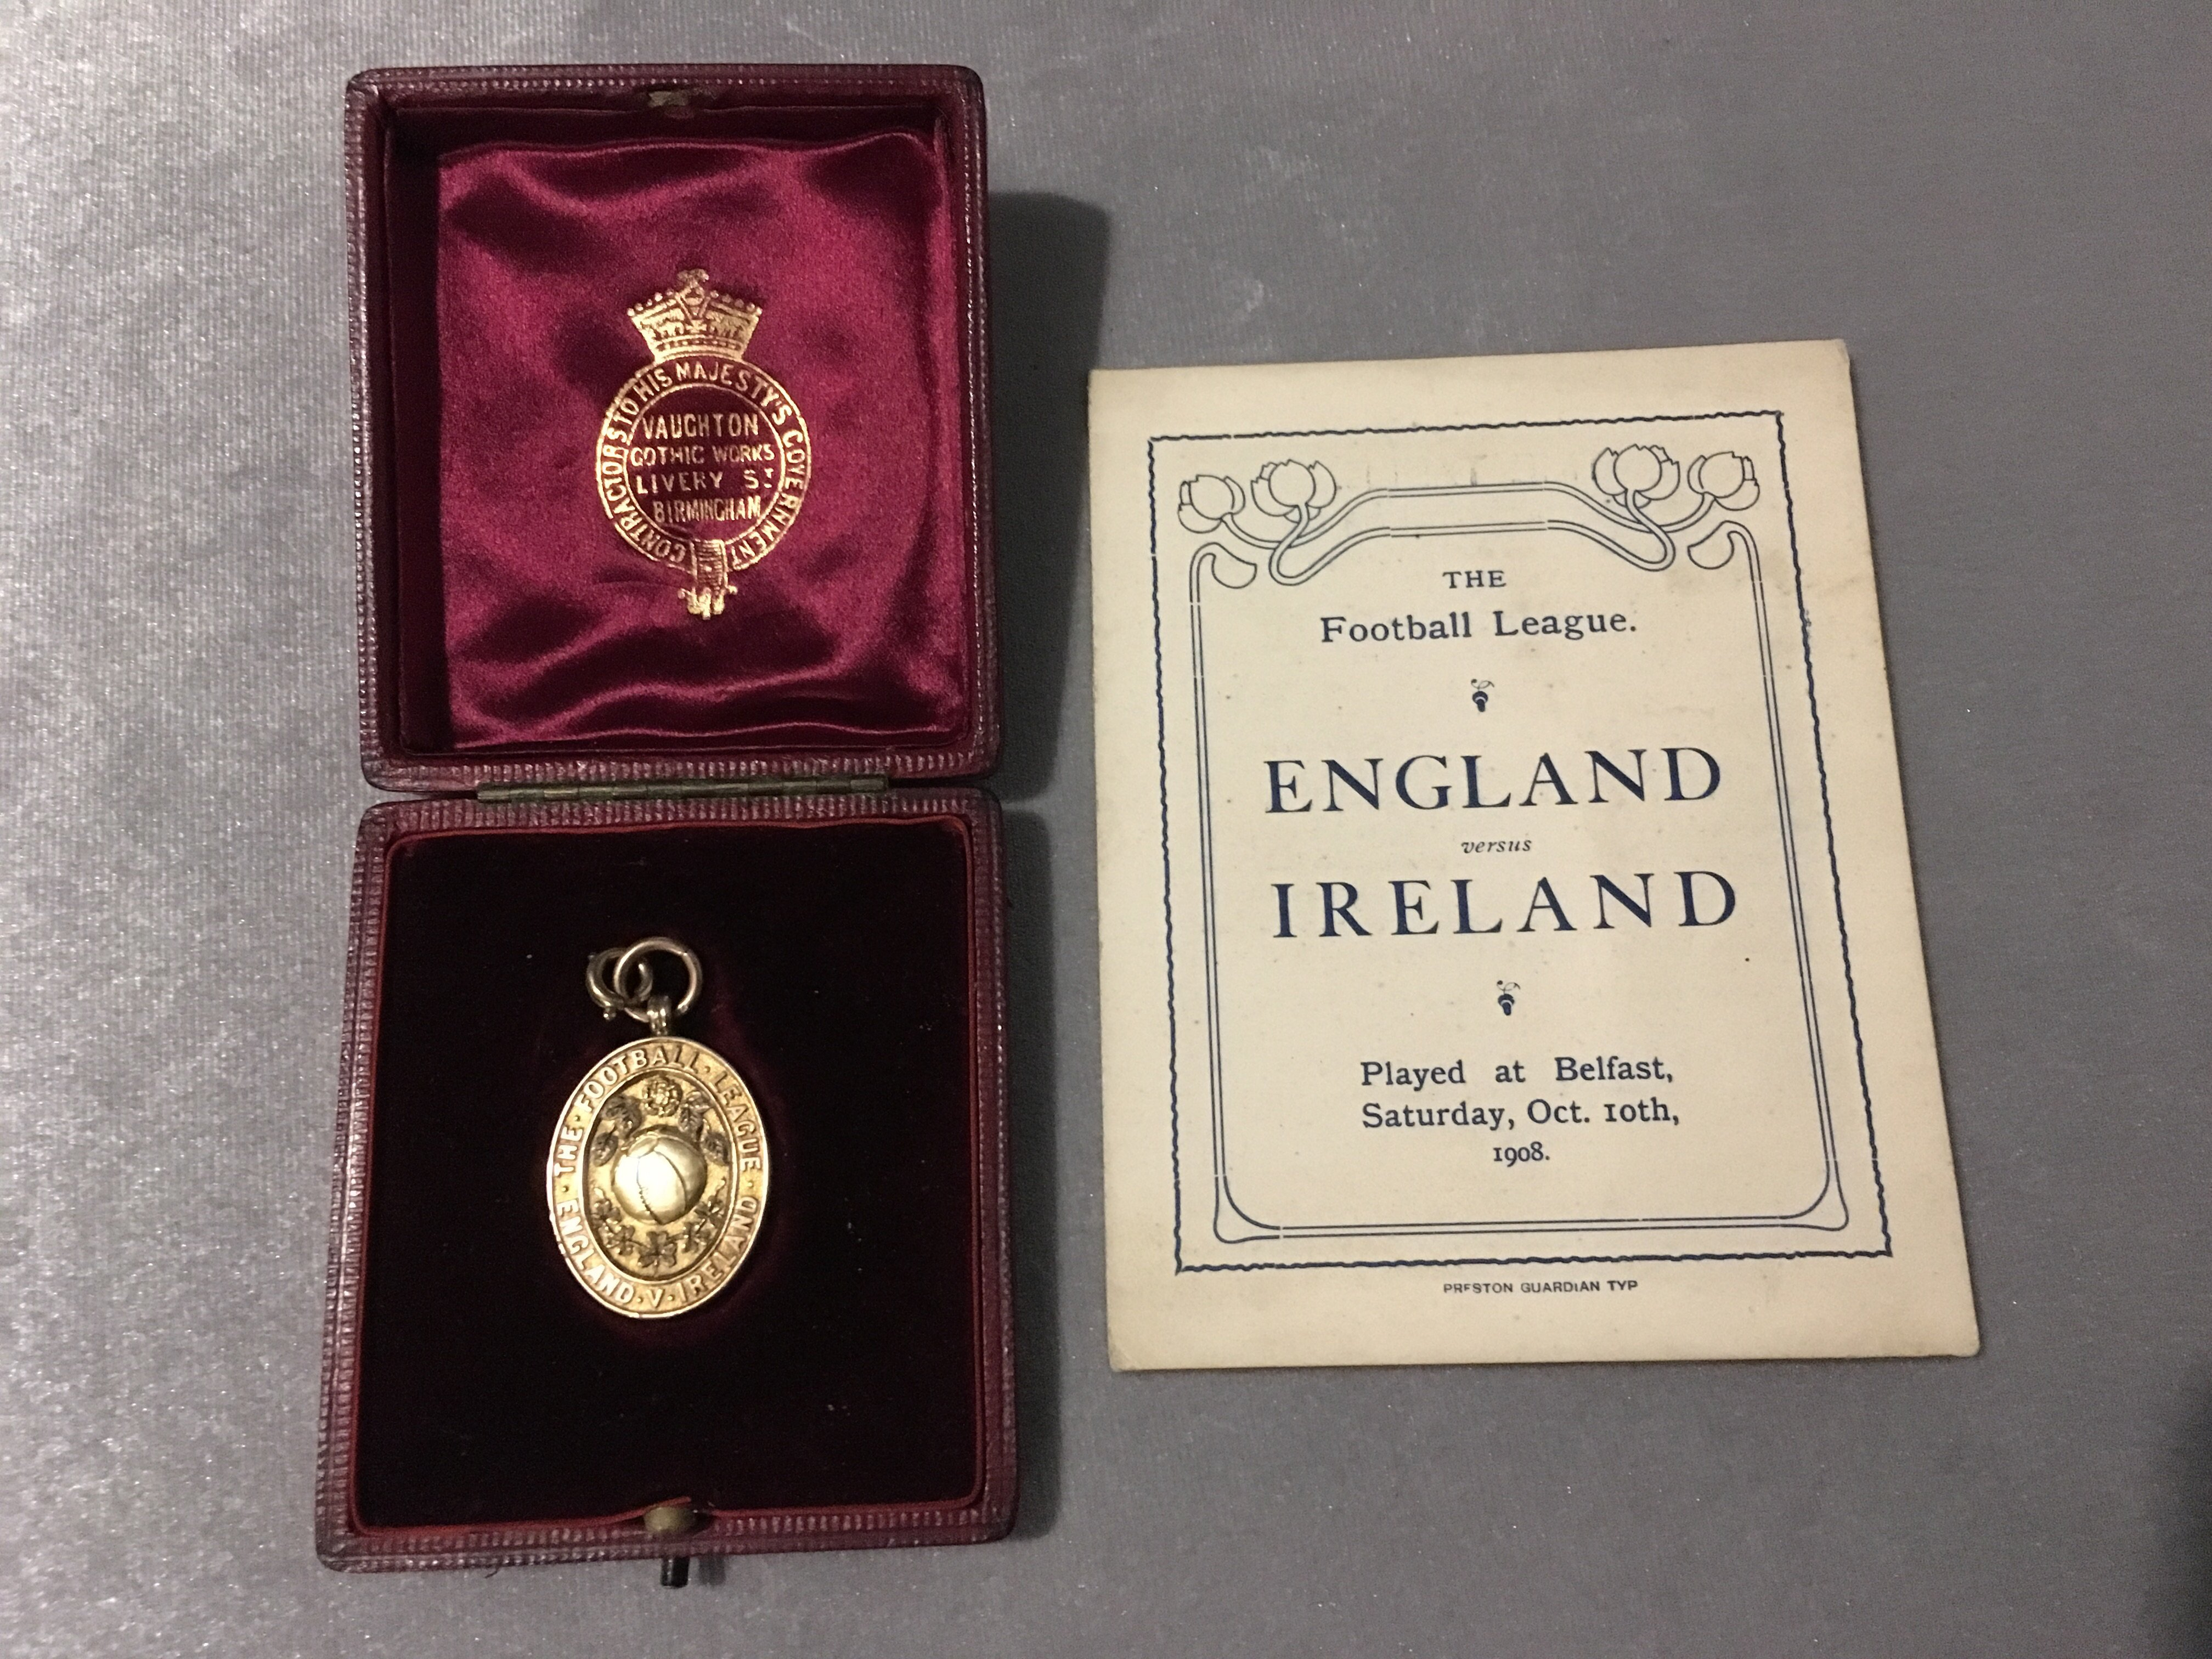 1908 England Football League Medal + Itinerary: Superb gold Vaughons medal in original box. The rear